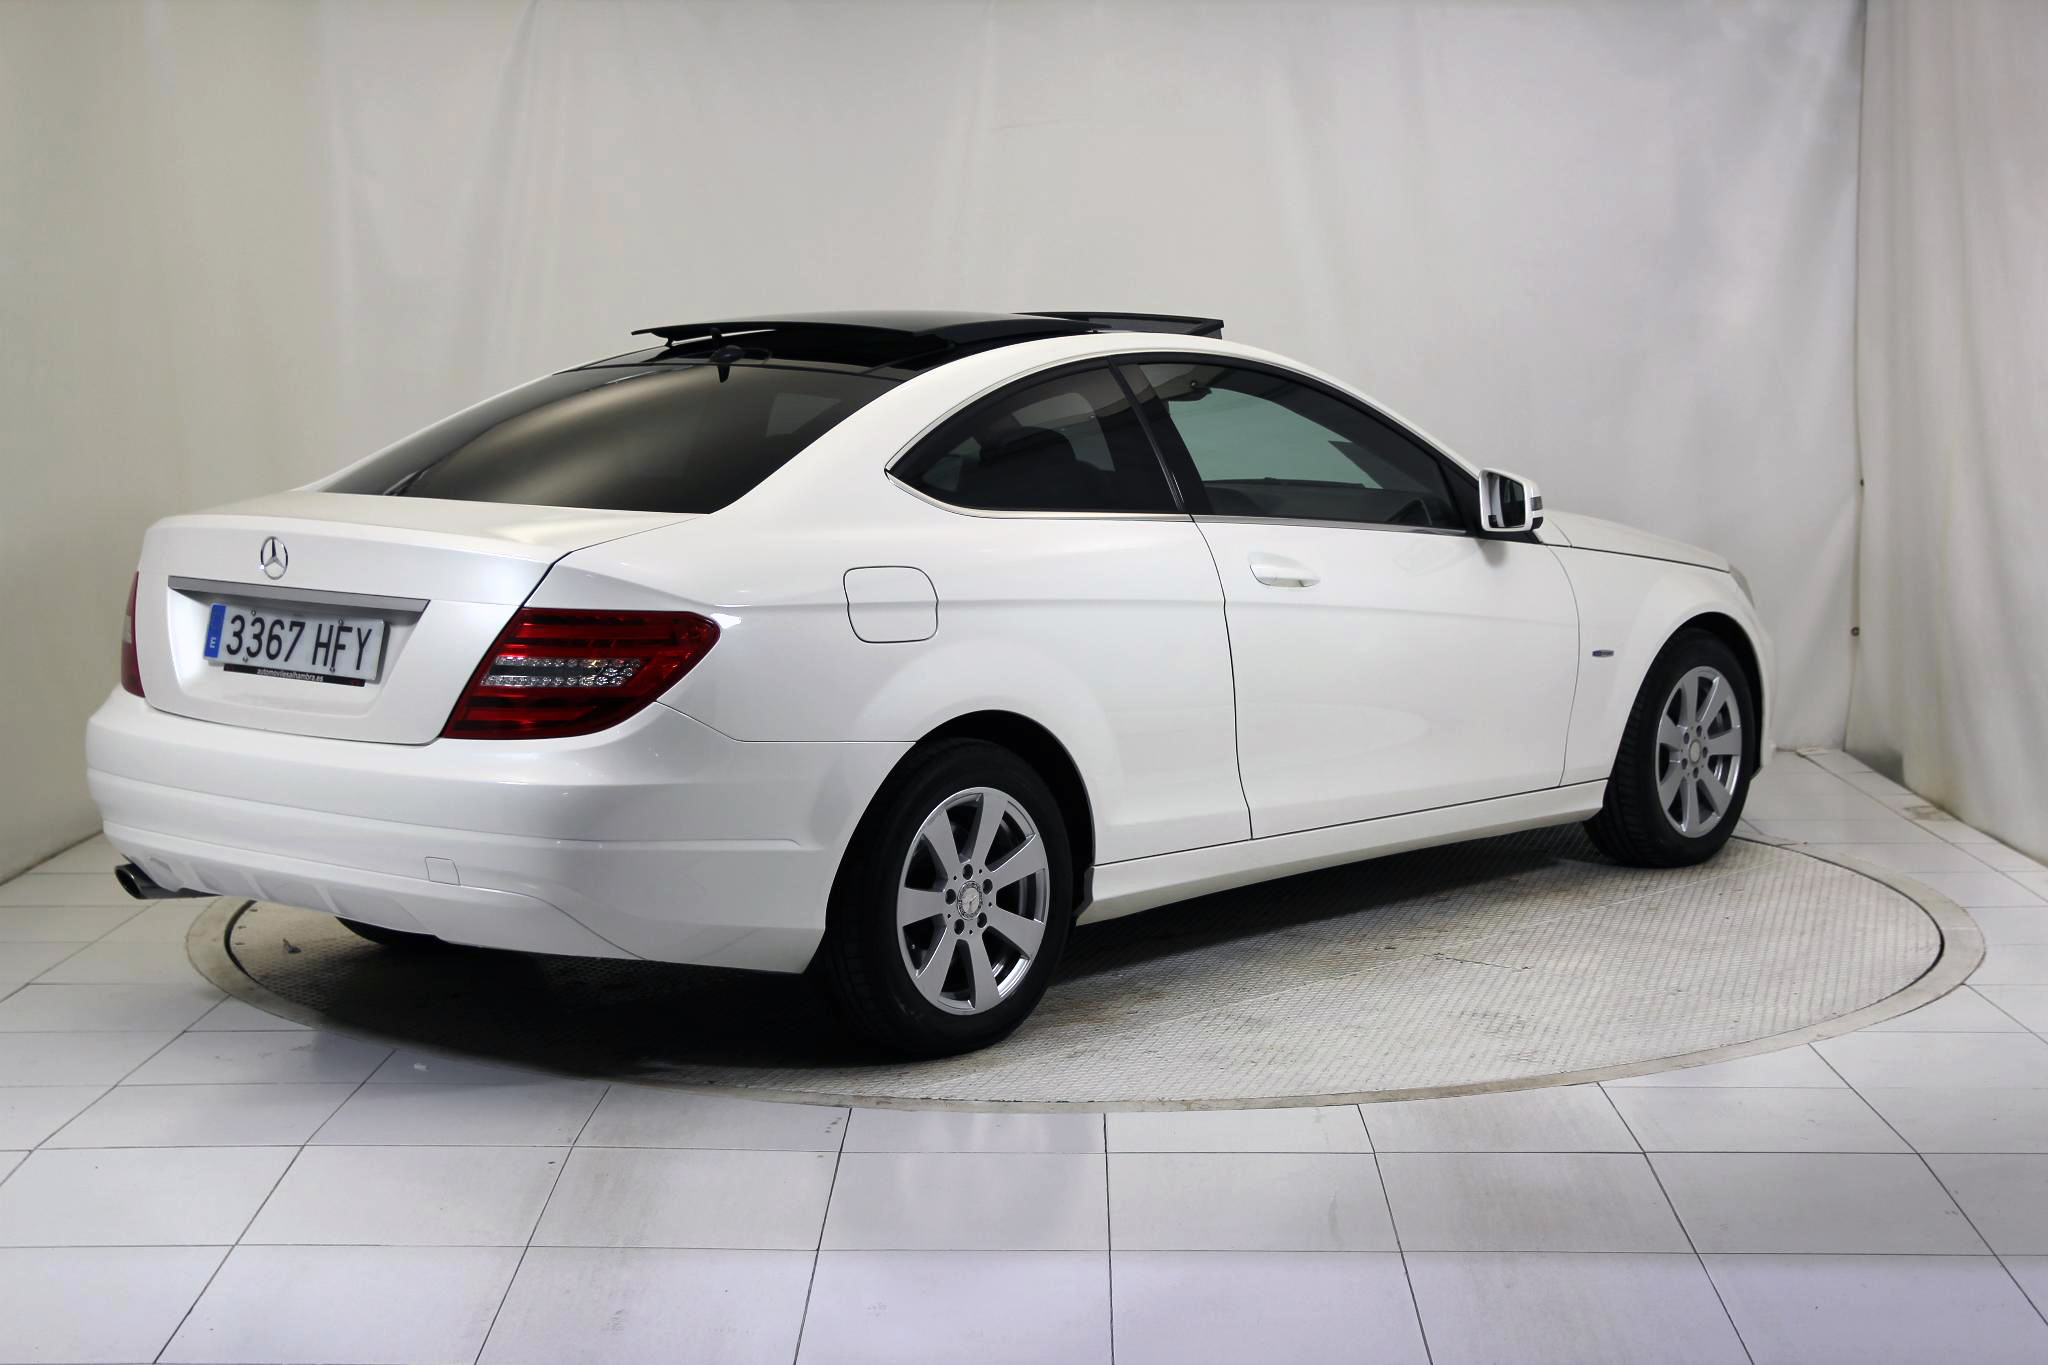 Mercedes-Benz Clase C CLASE C COUPE 220 CDI BLUE EFFICIENCY imagen 6